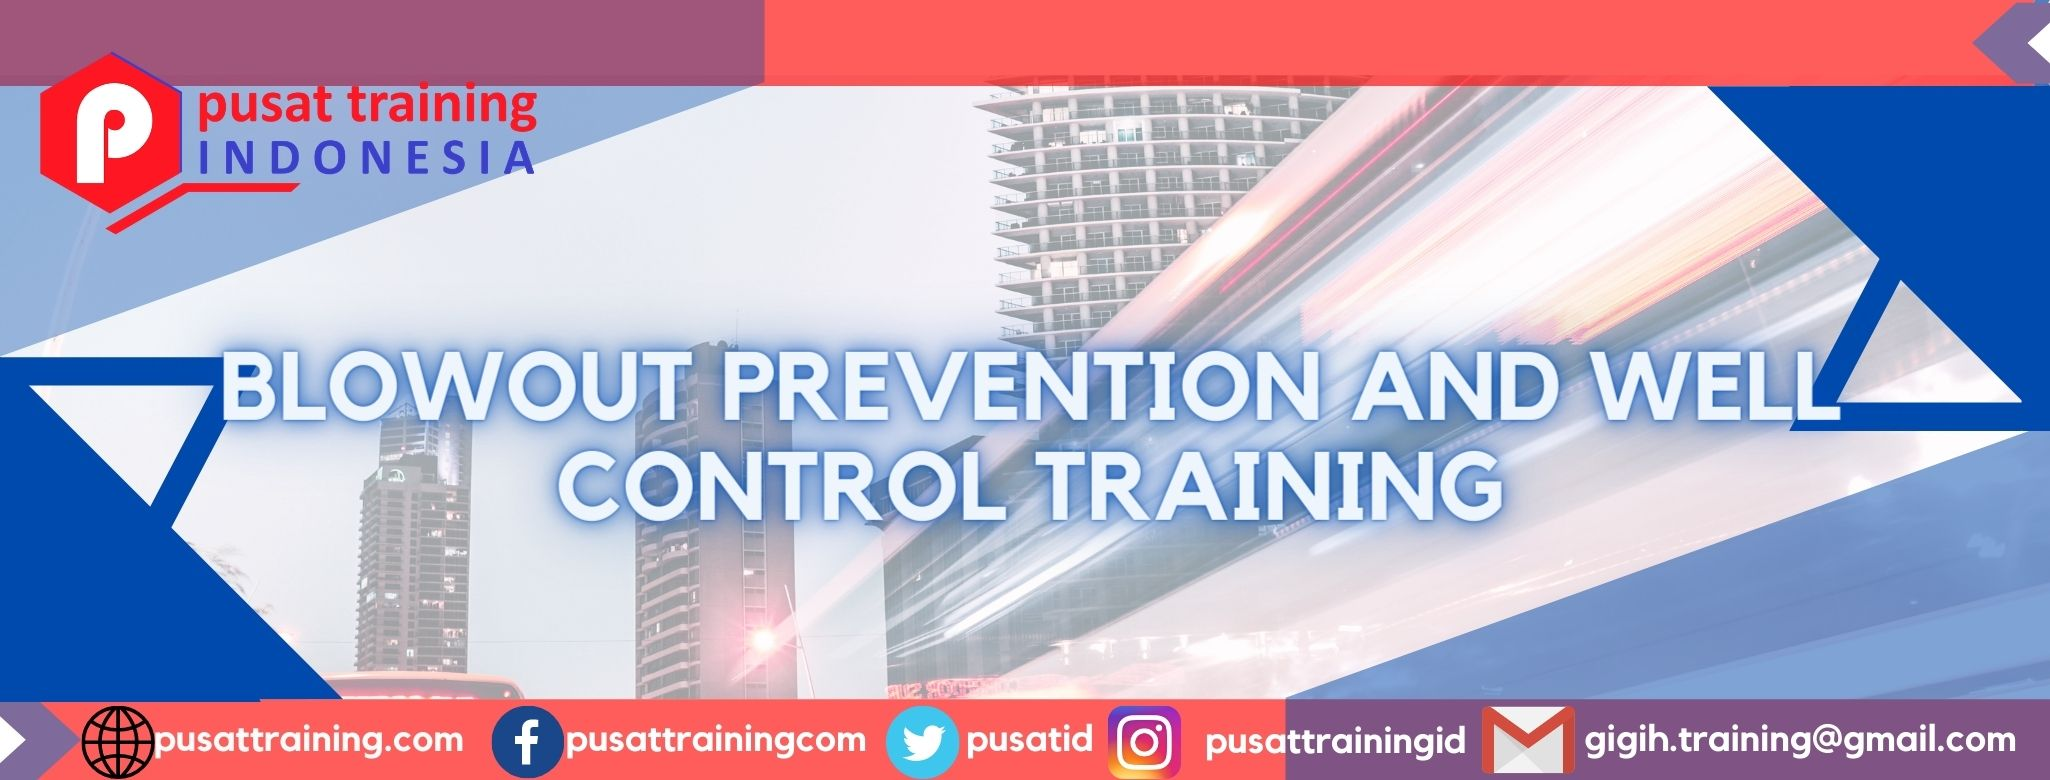 BLOWOUT PREVENTION AND WELL CONTROL TRAINING